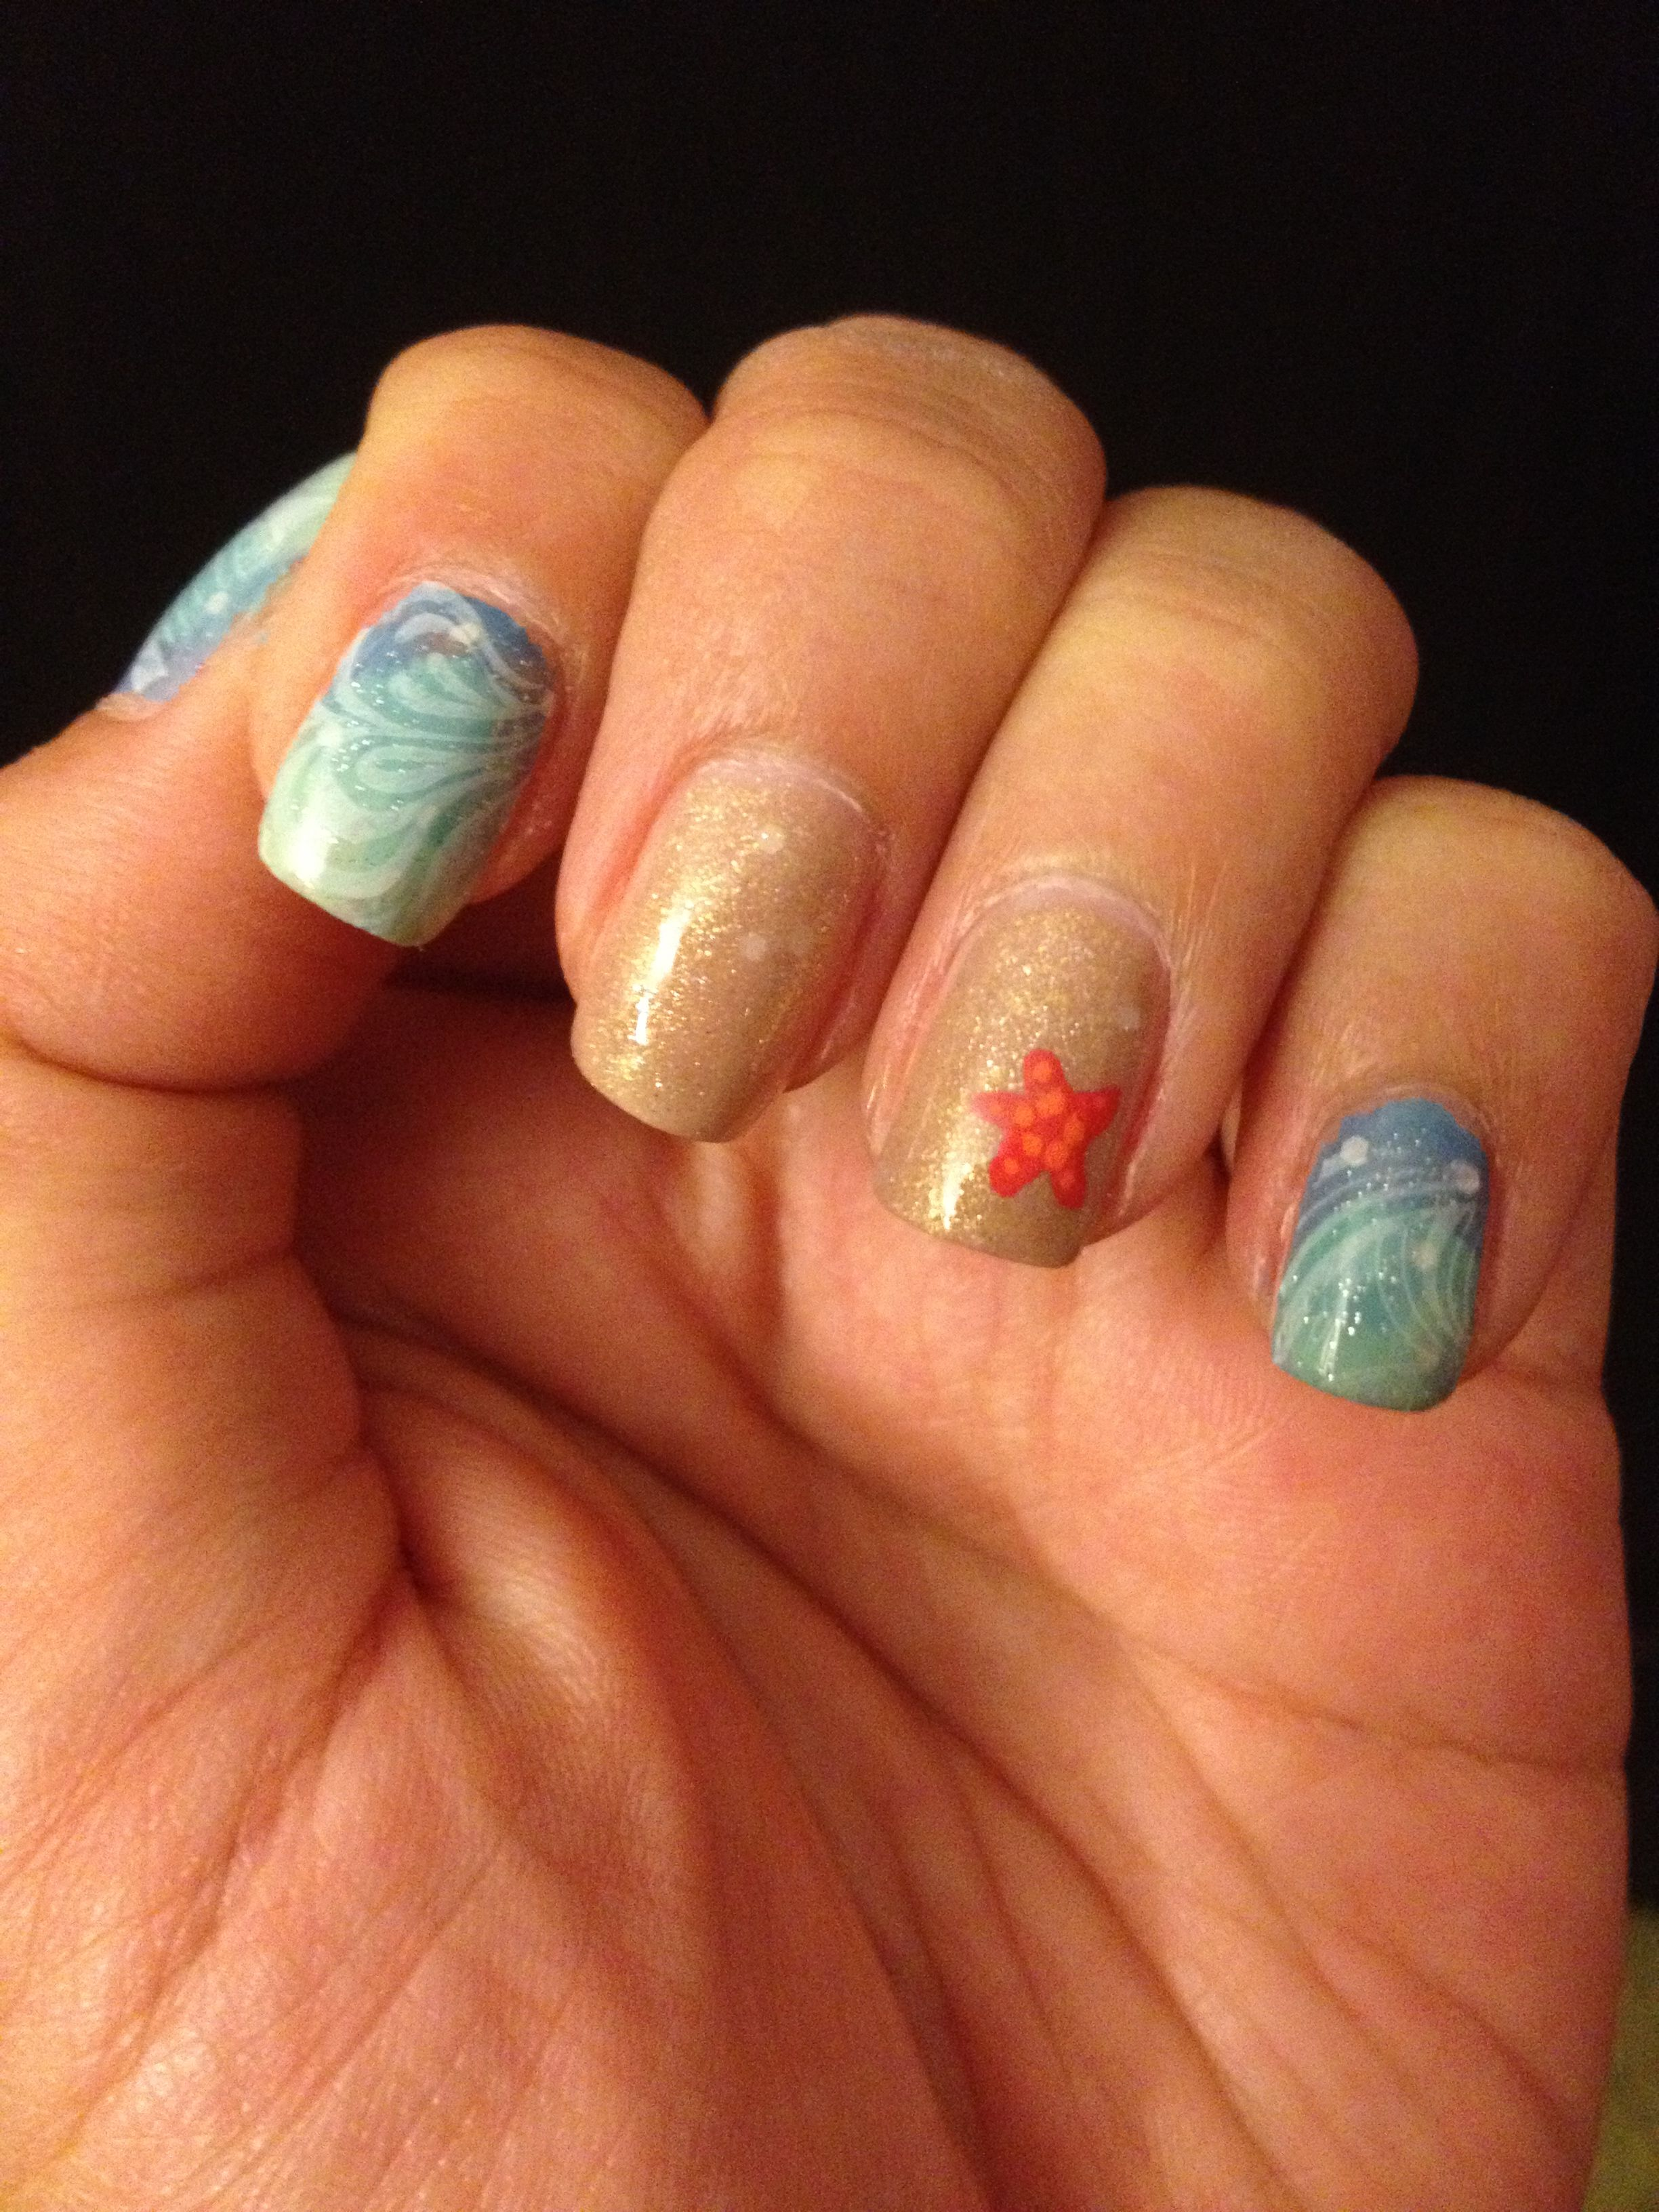 Beach Starfish Nail Art Amy Houseman Check Out The Starfish